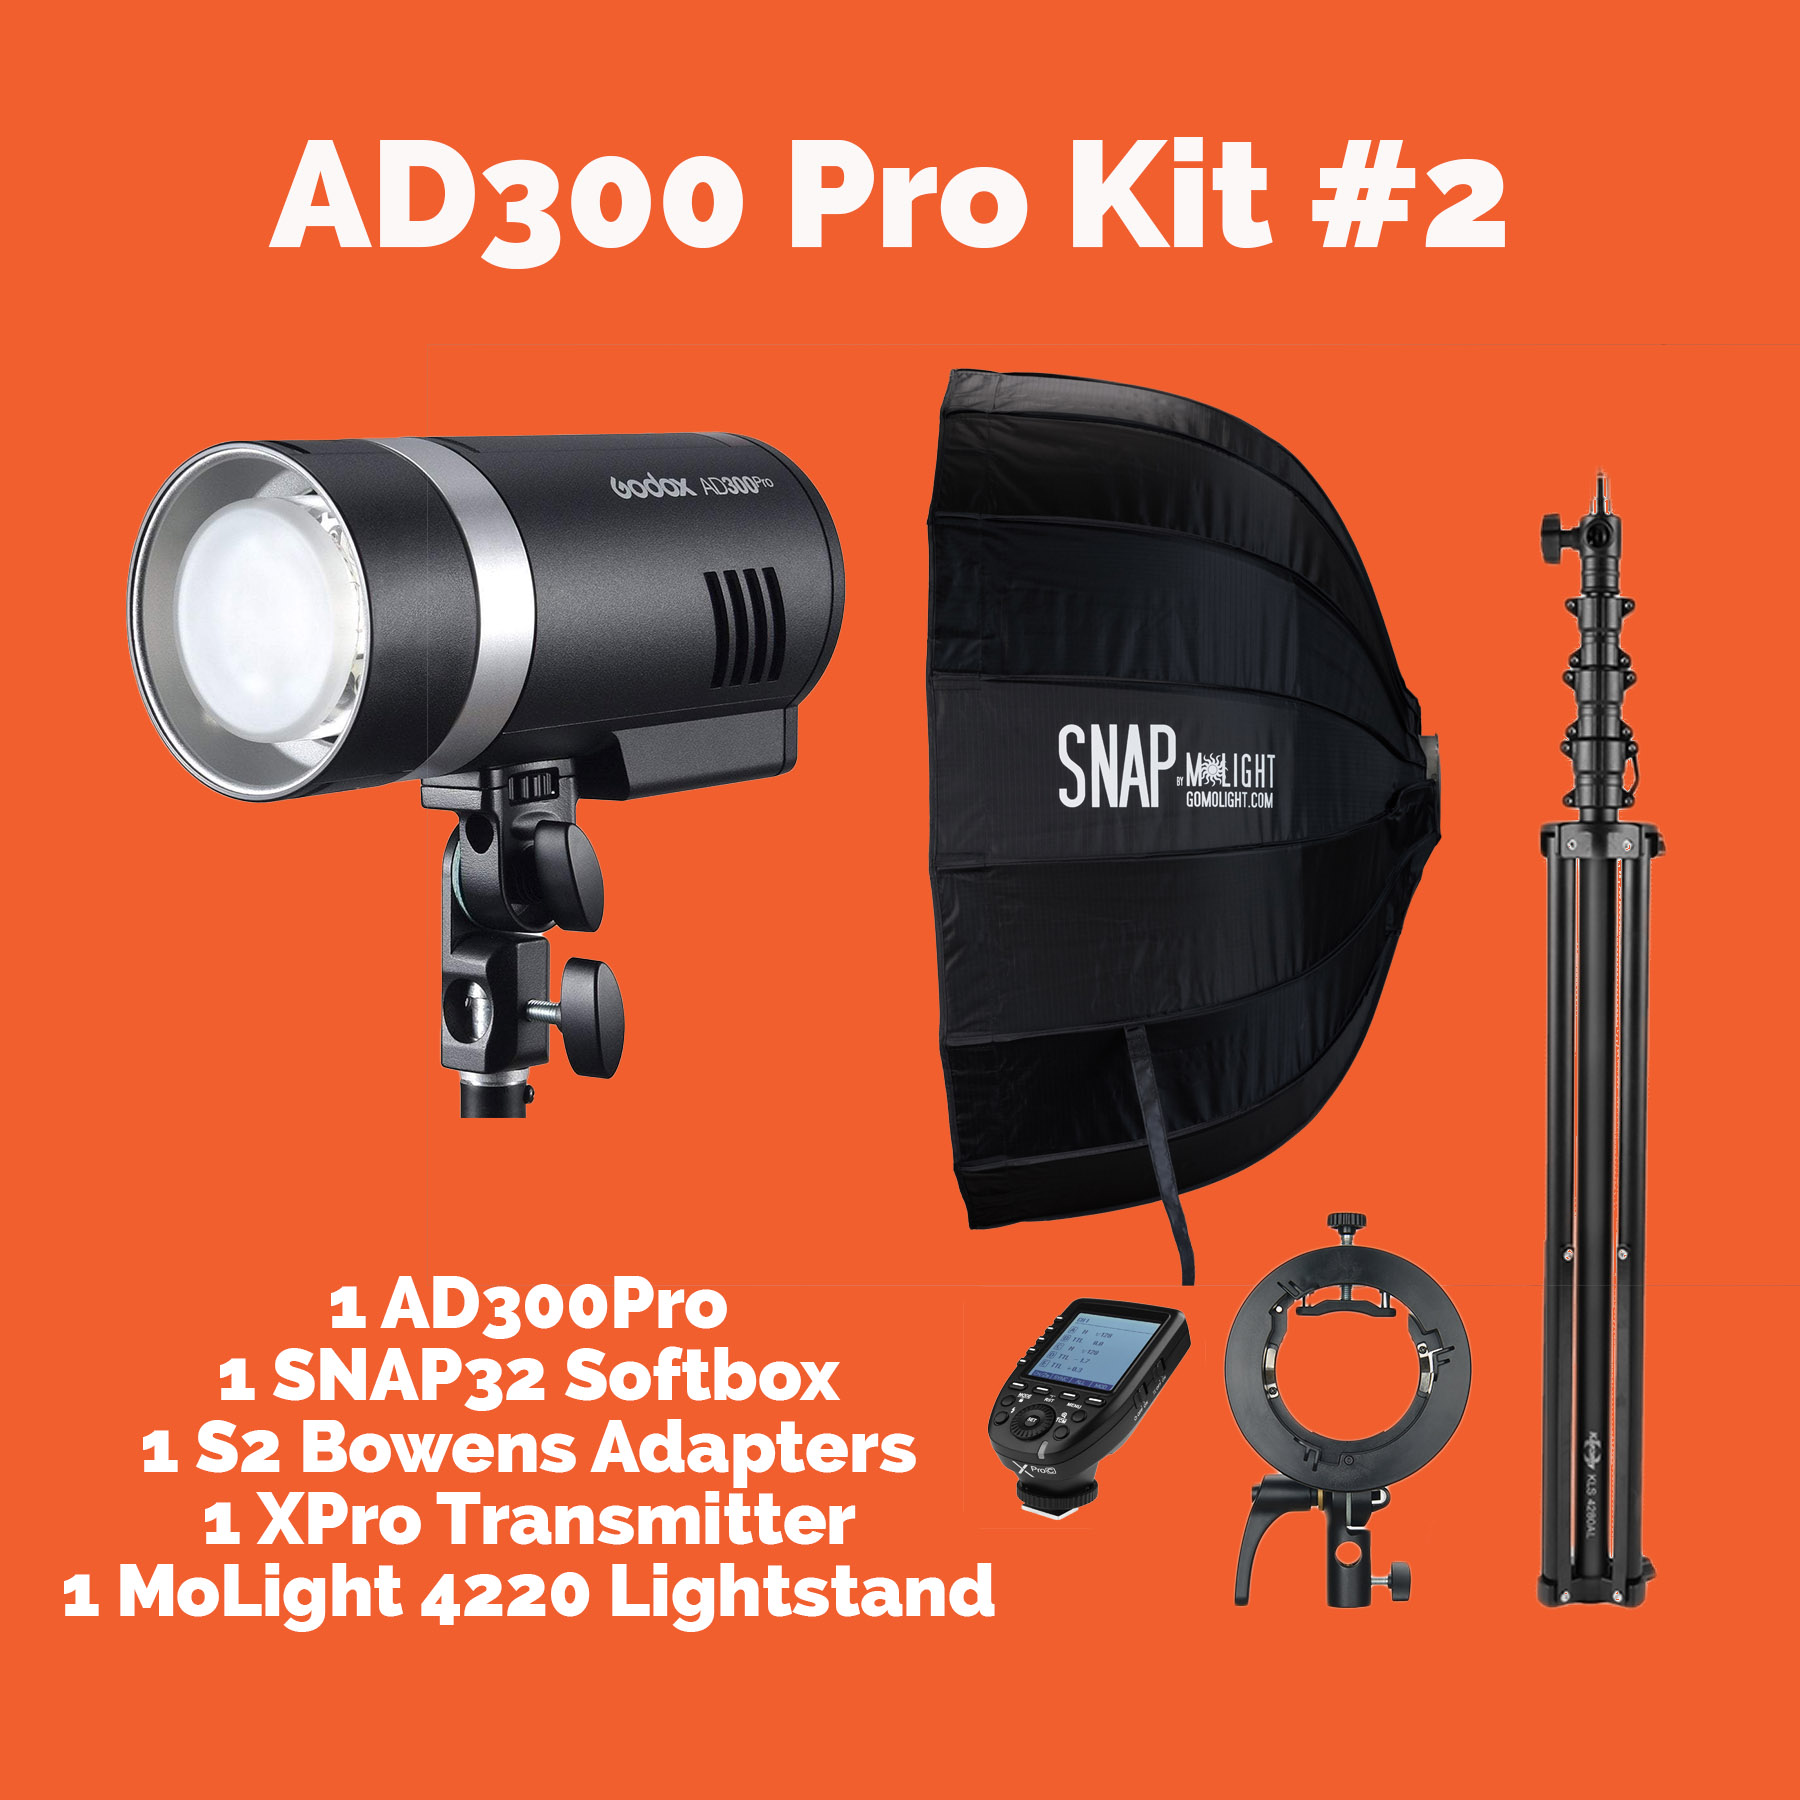 AD300Pro Kit #2 with SNAP32